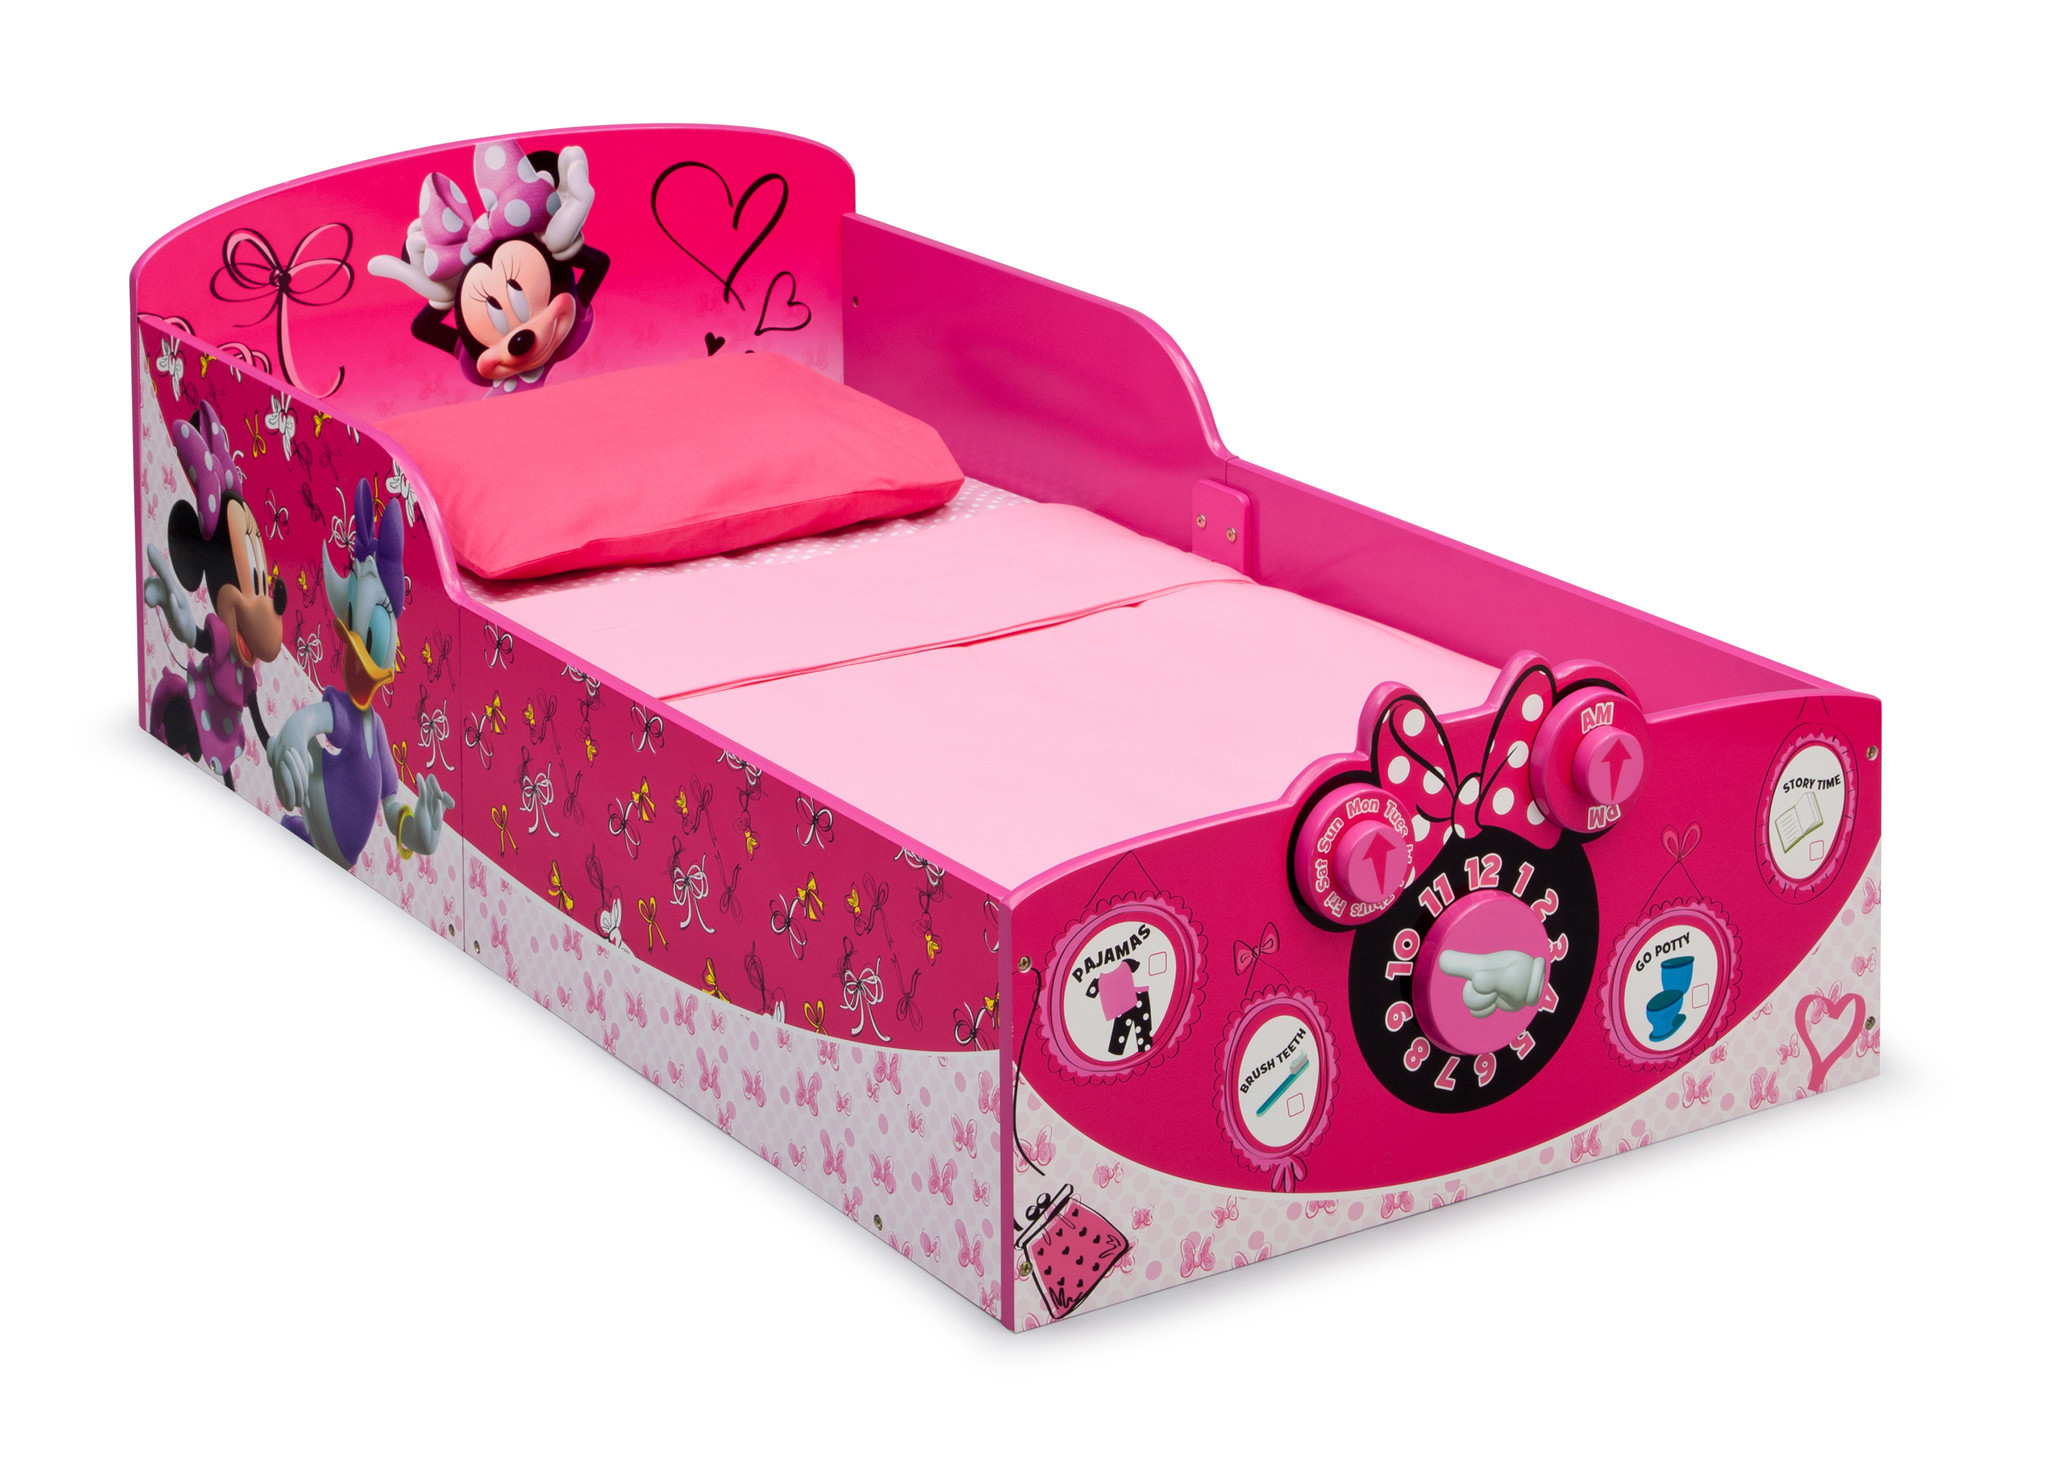 Delta Children's Products Toddler Bed Minnie Mouse